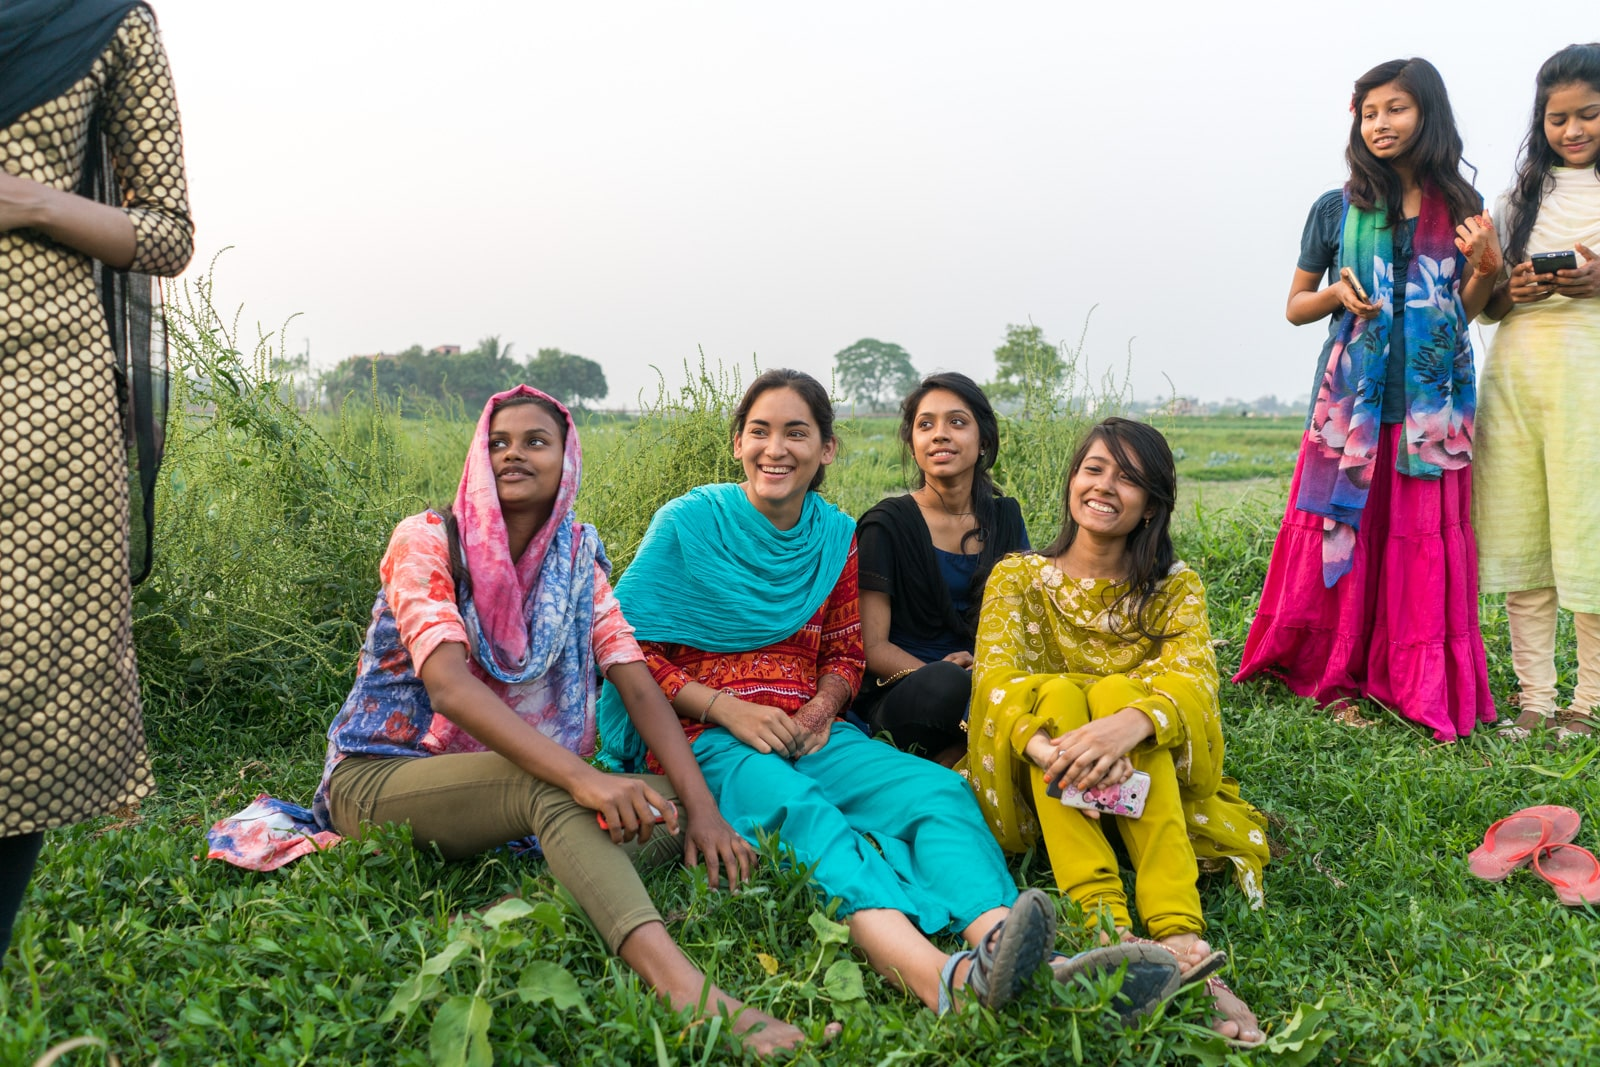 Is Bangladesh safe for solo female travelers - Selfie time with girls outside of Dhaka - Lost With Purpose travel blog